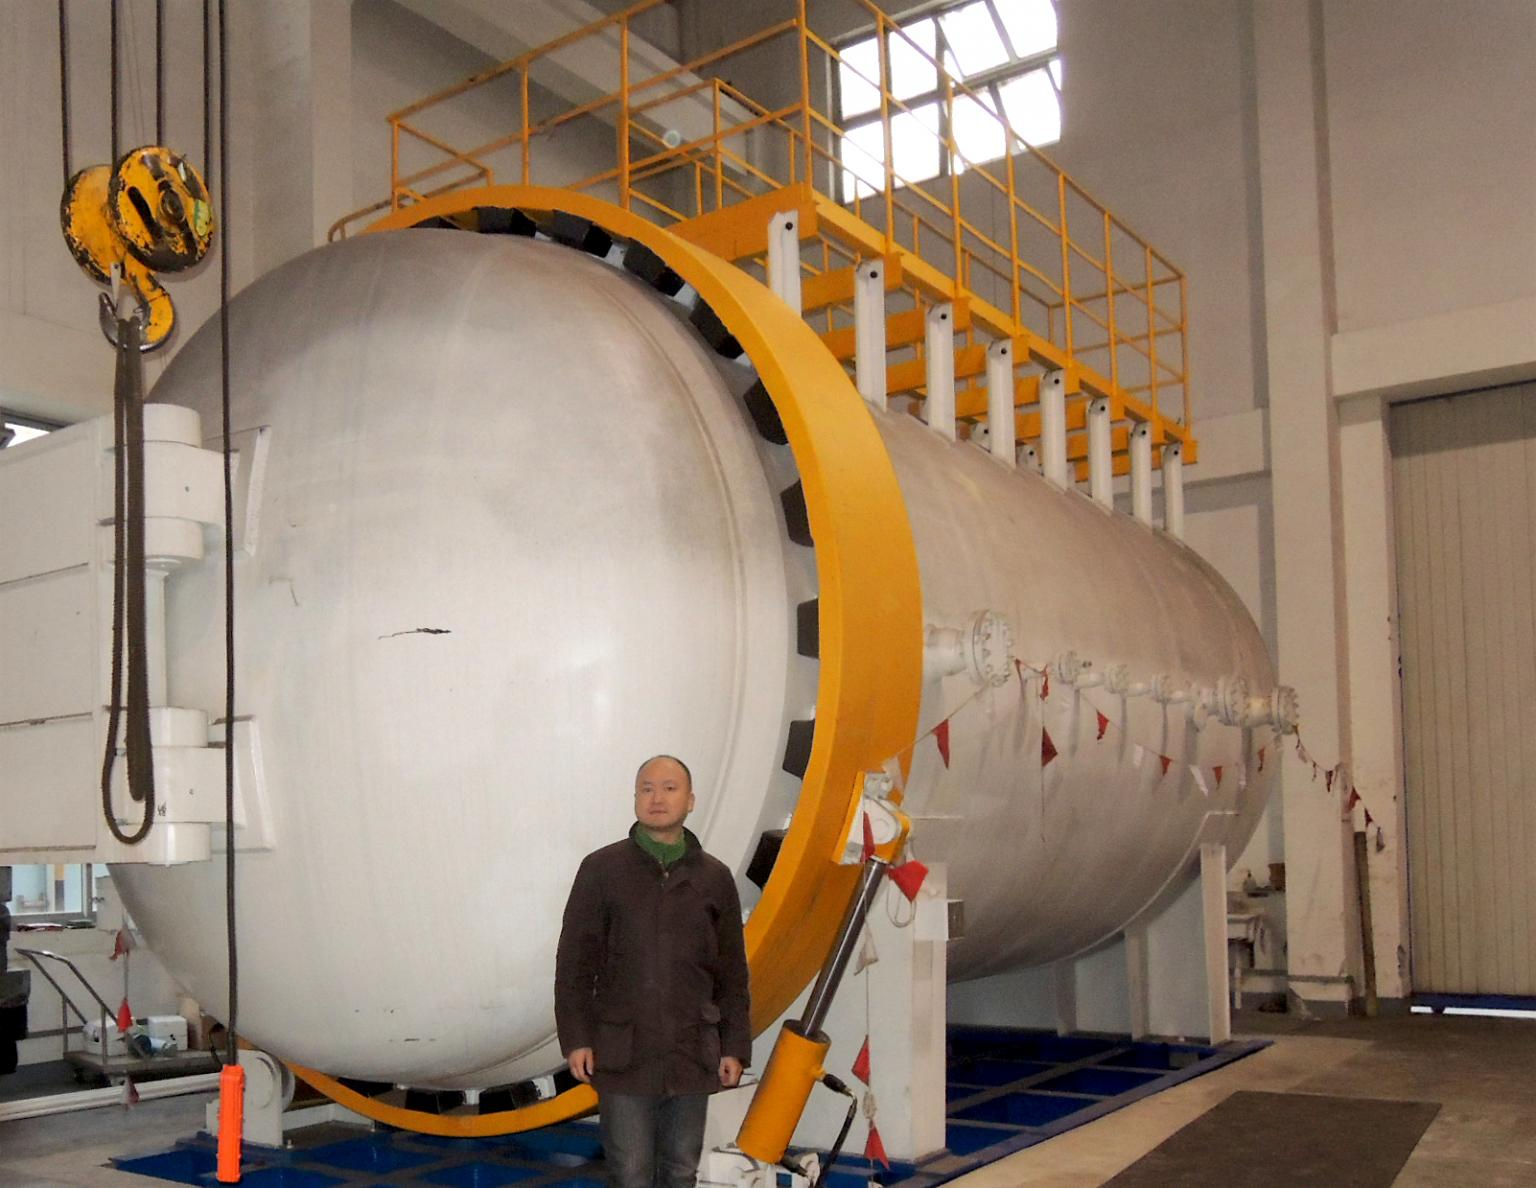 Zheng Zhang, Sales Manager for China, in front of the 80m3 testing tank into which the gas mixer feeds the Norm-defined gas mixtures. Image: Witt